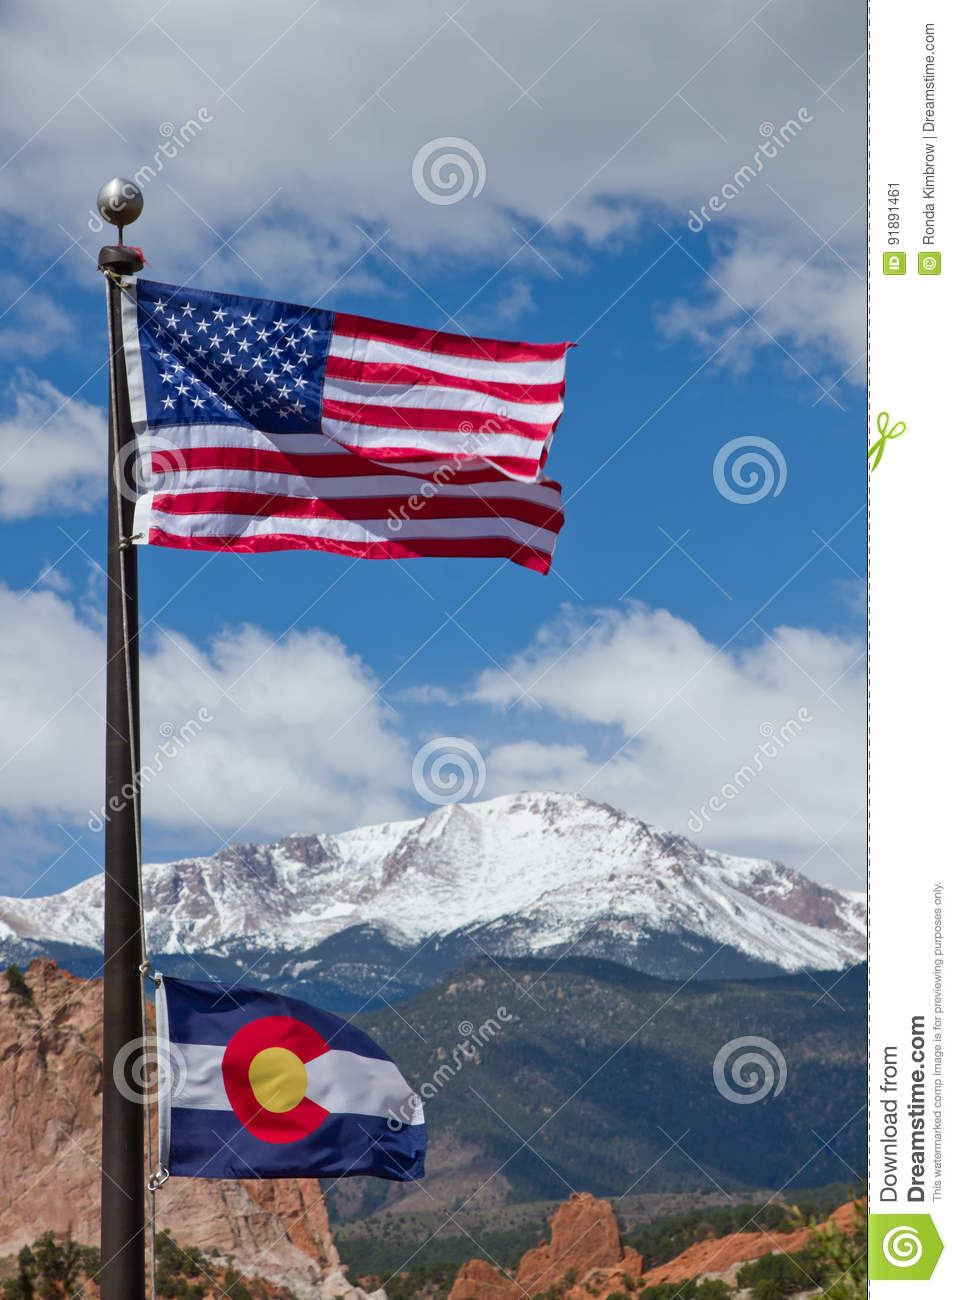 American and Colorado Flag waving in the wind with mountains in